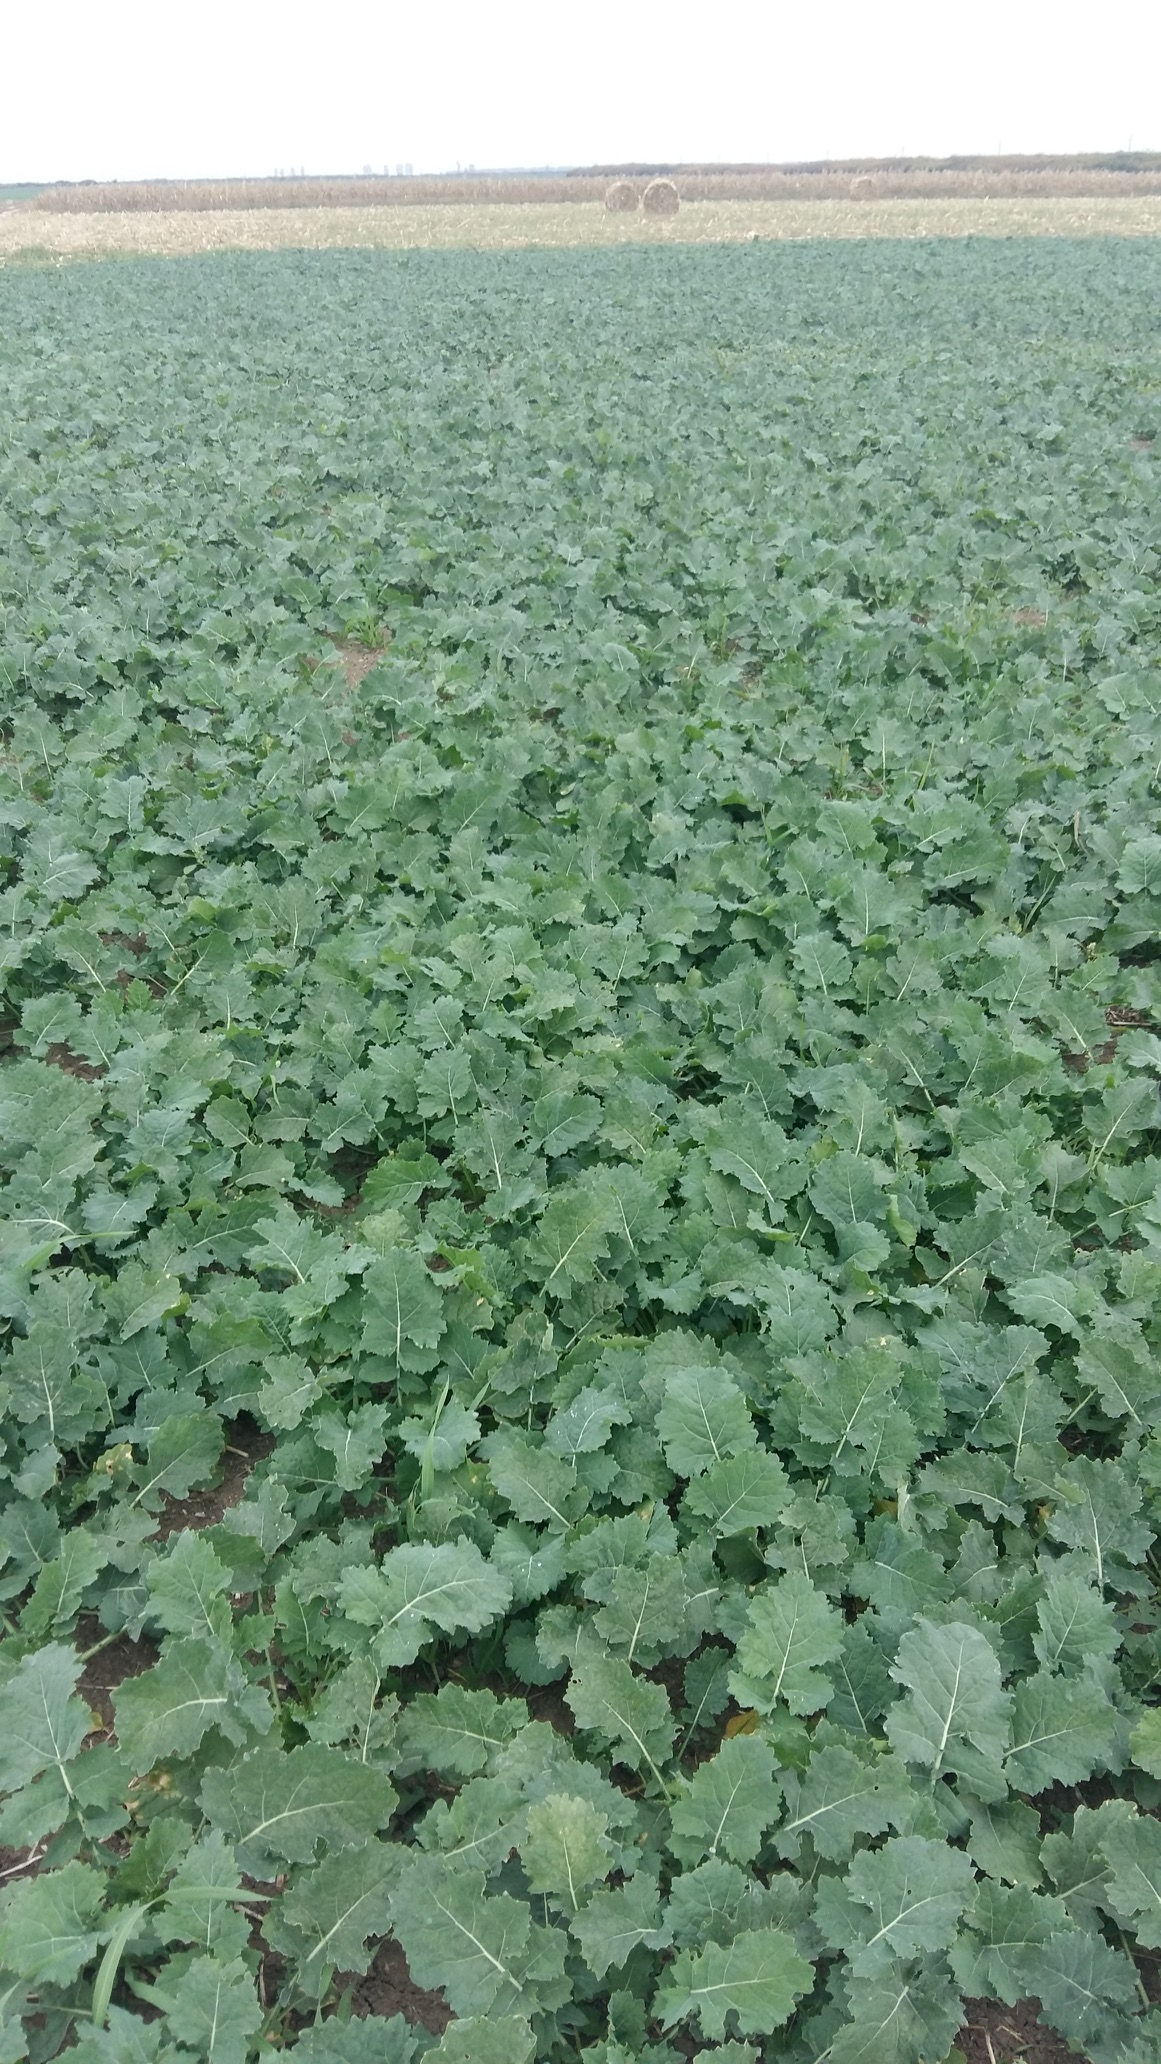 Effect of the Butisan Avant herbicide on the pigweed (chenopodium album) in rapeseed